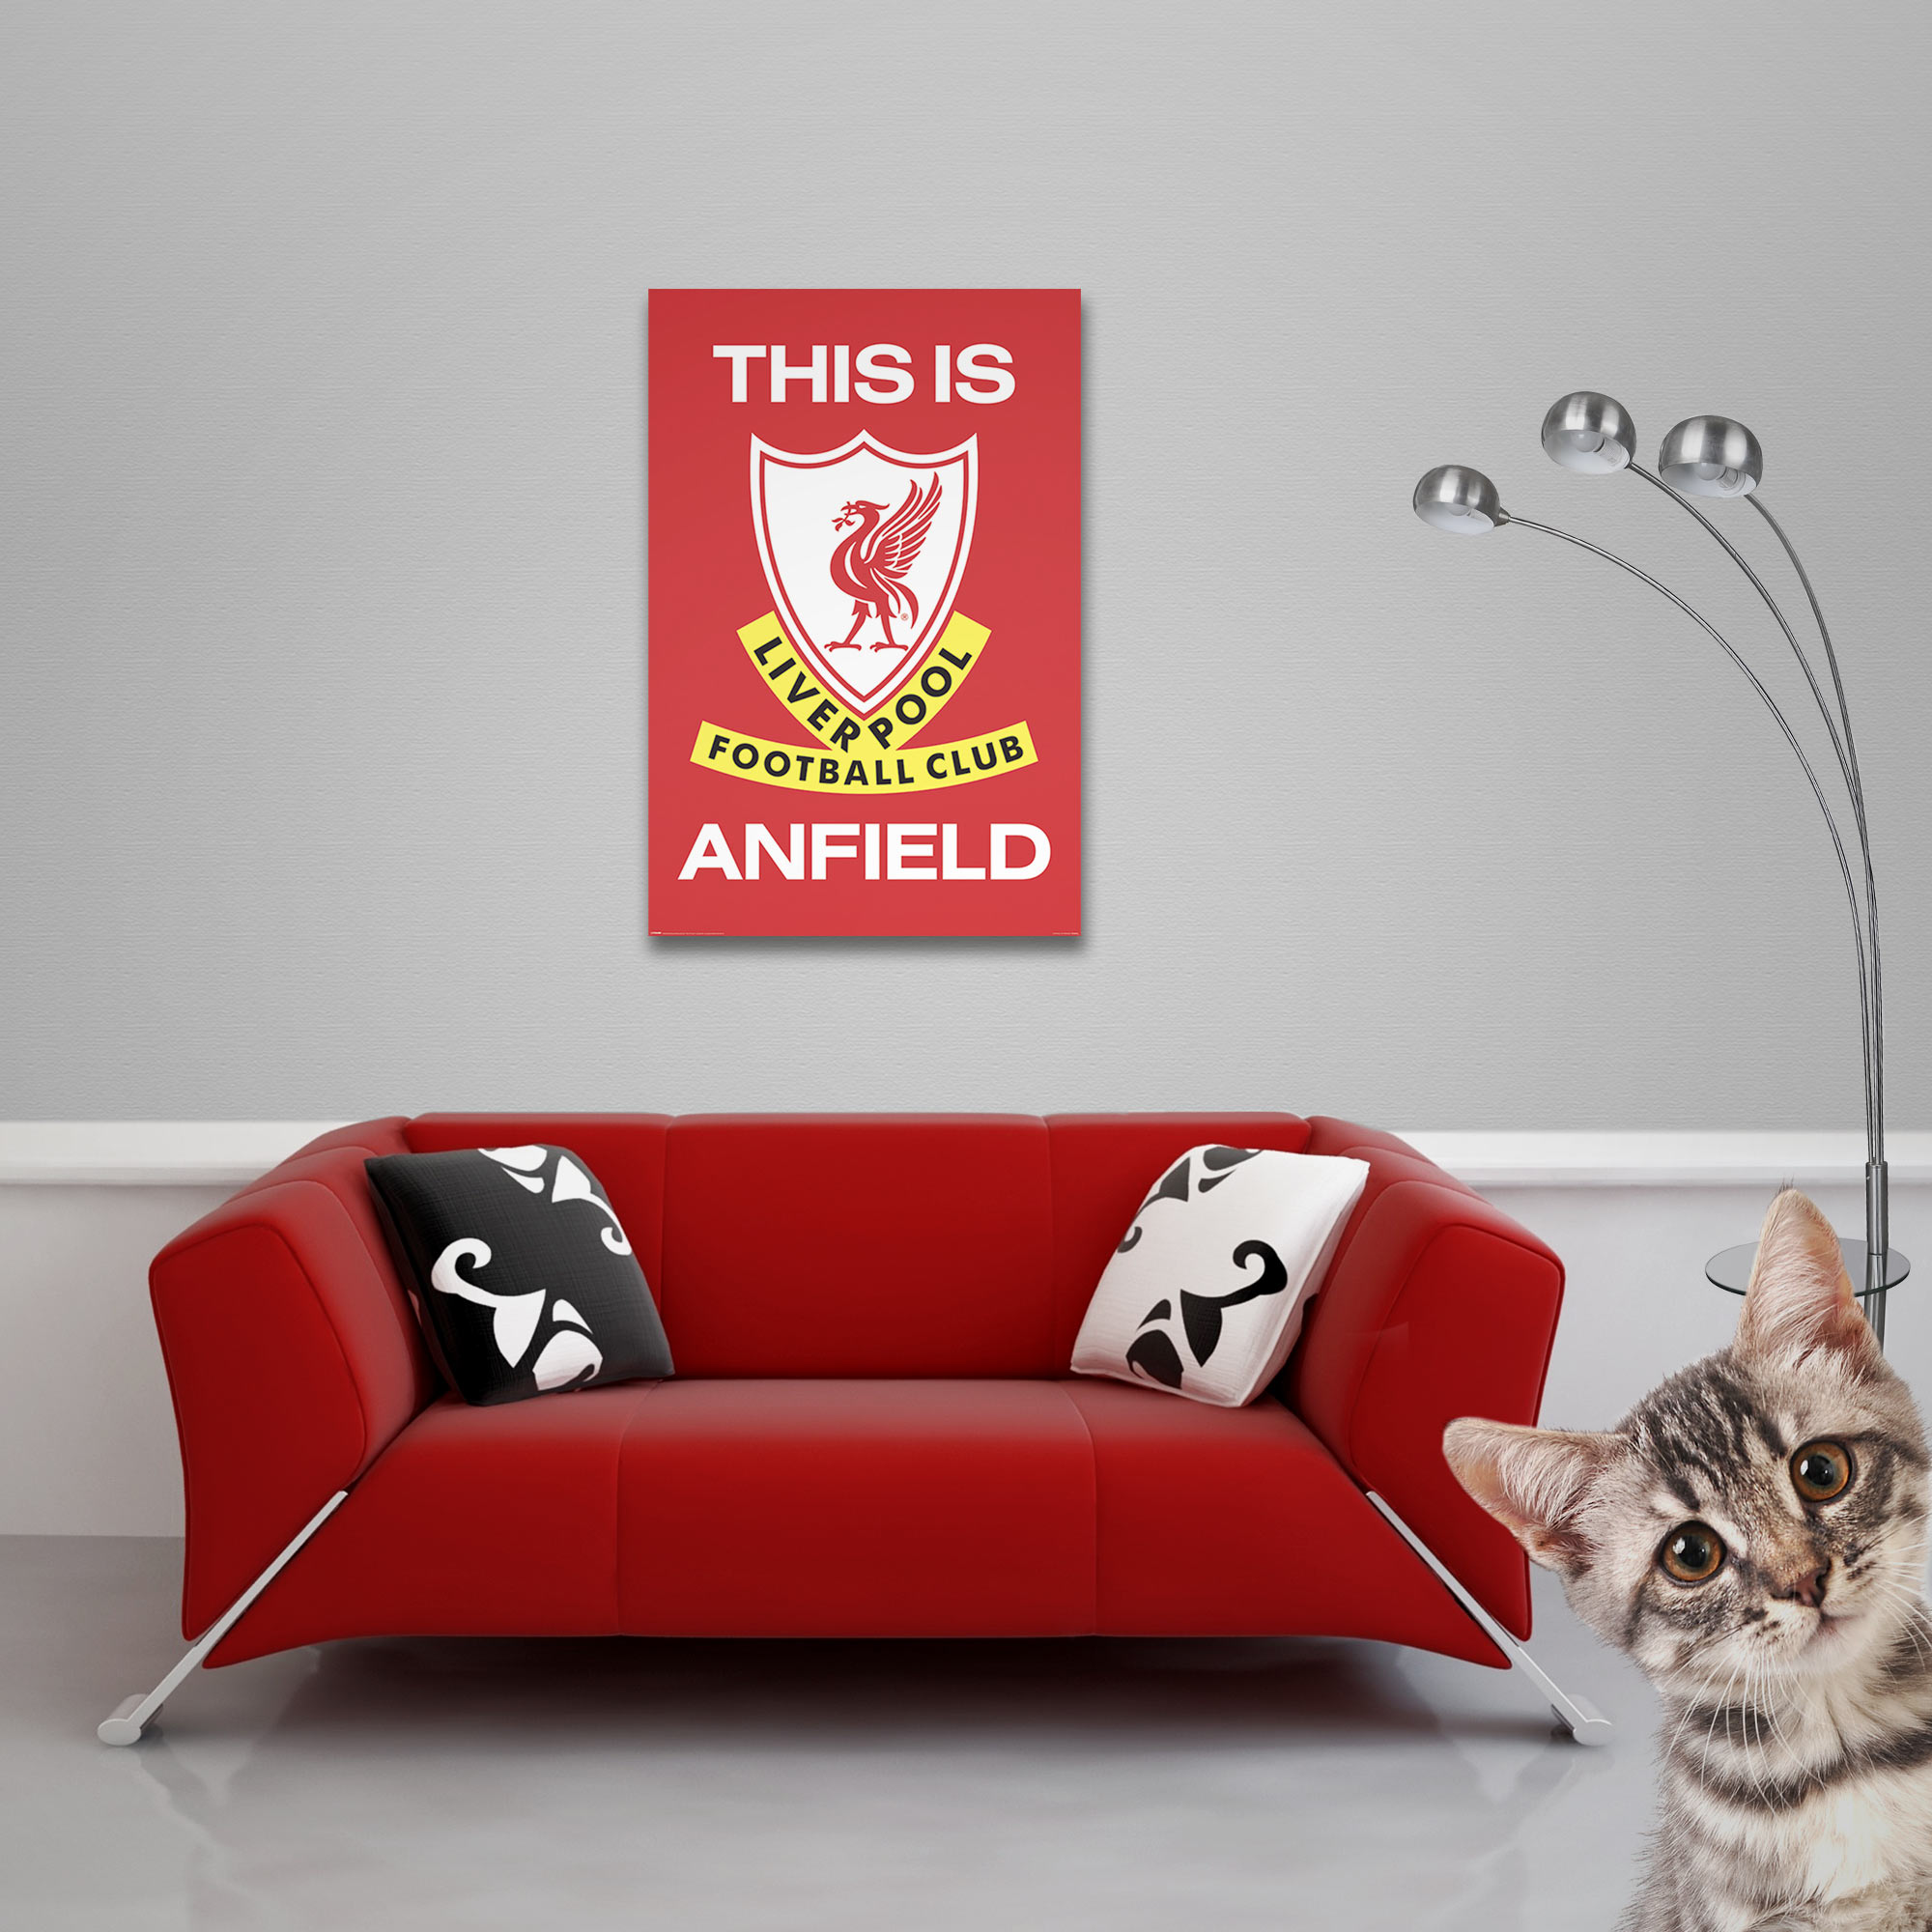 FC Liverpool - Poster - This Is Anfield Vorschau Sofa